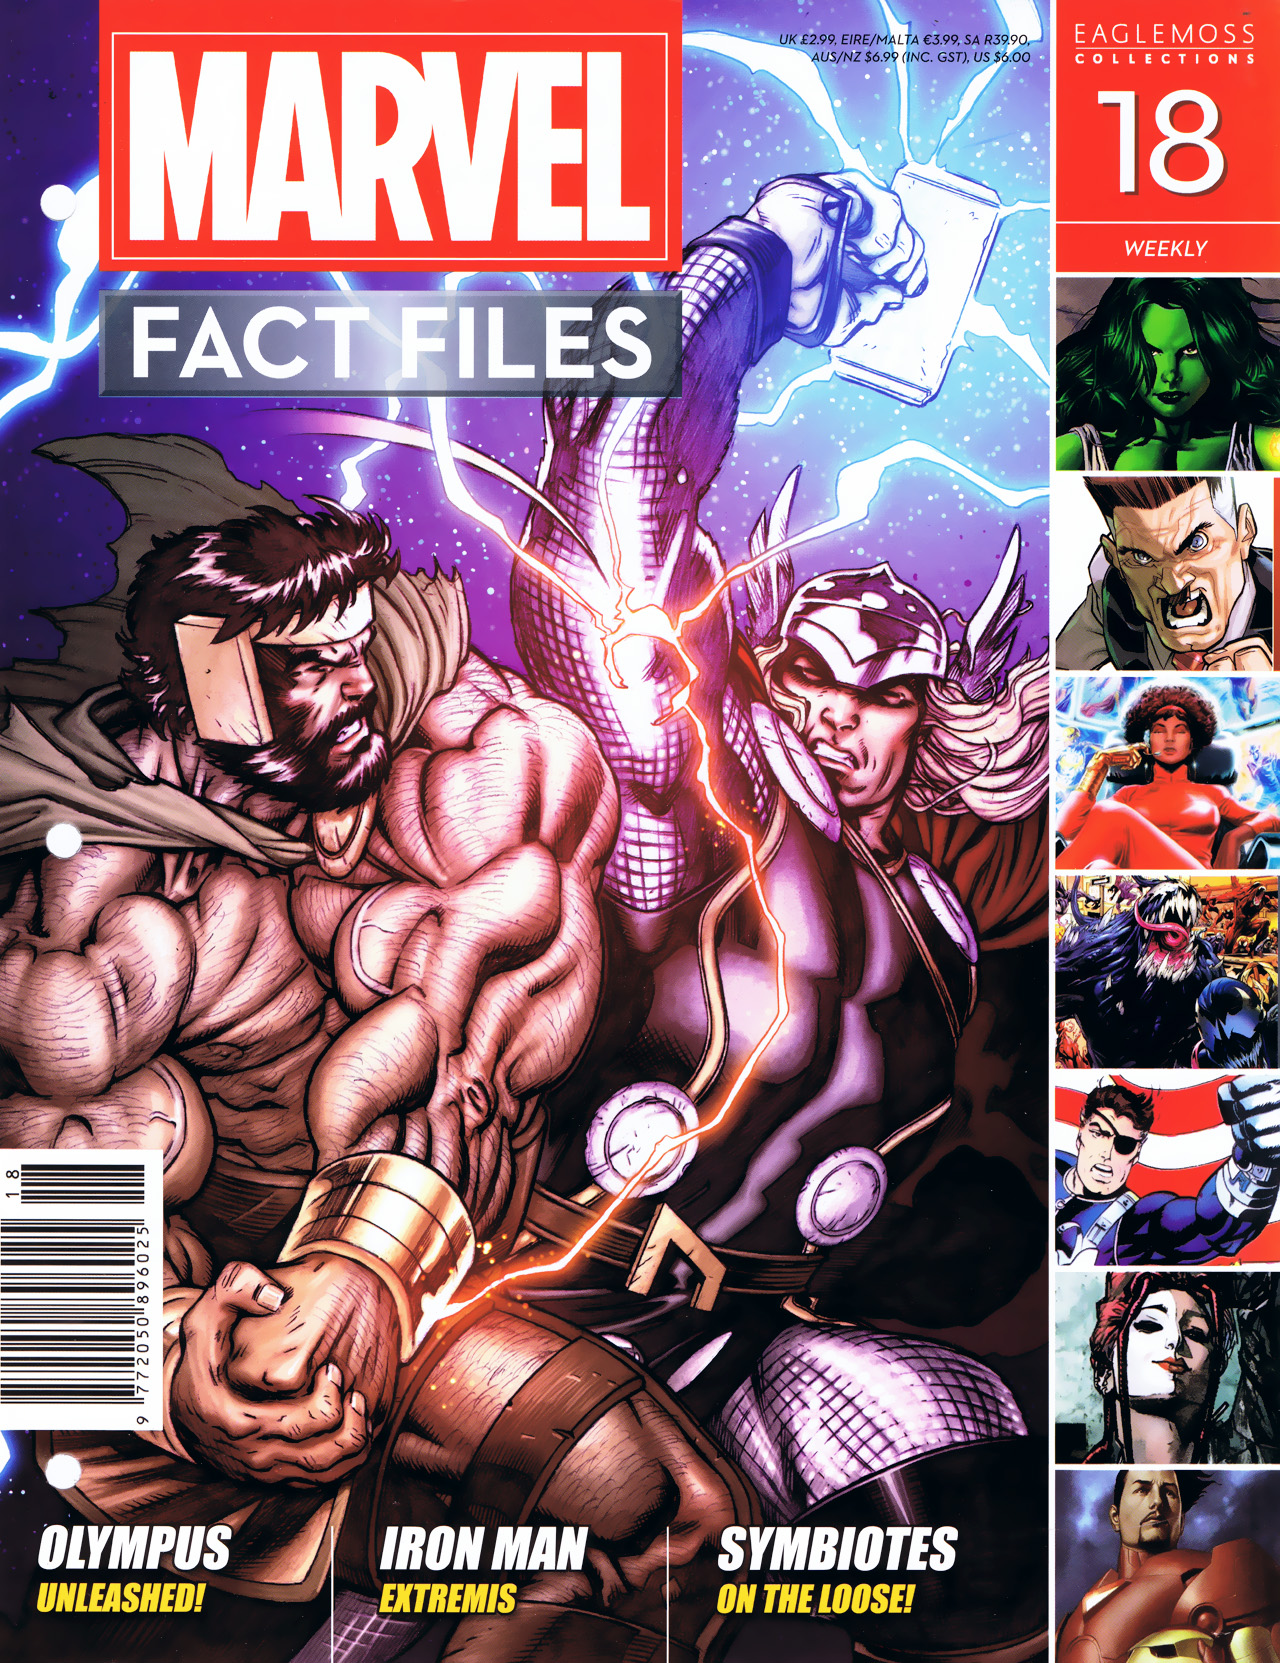 Marvel Fact Files 18 Page 1